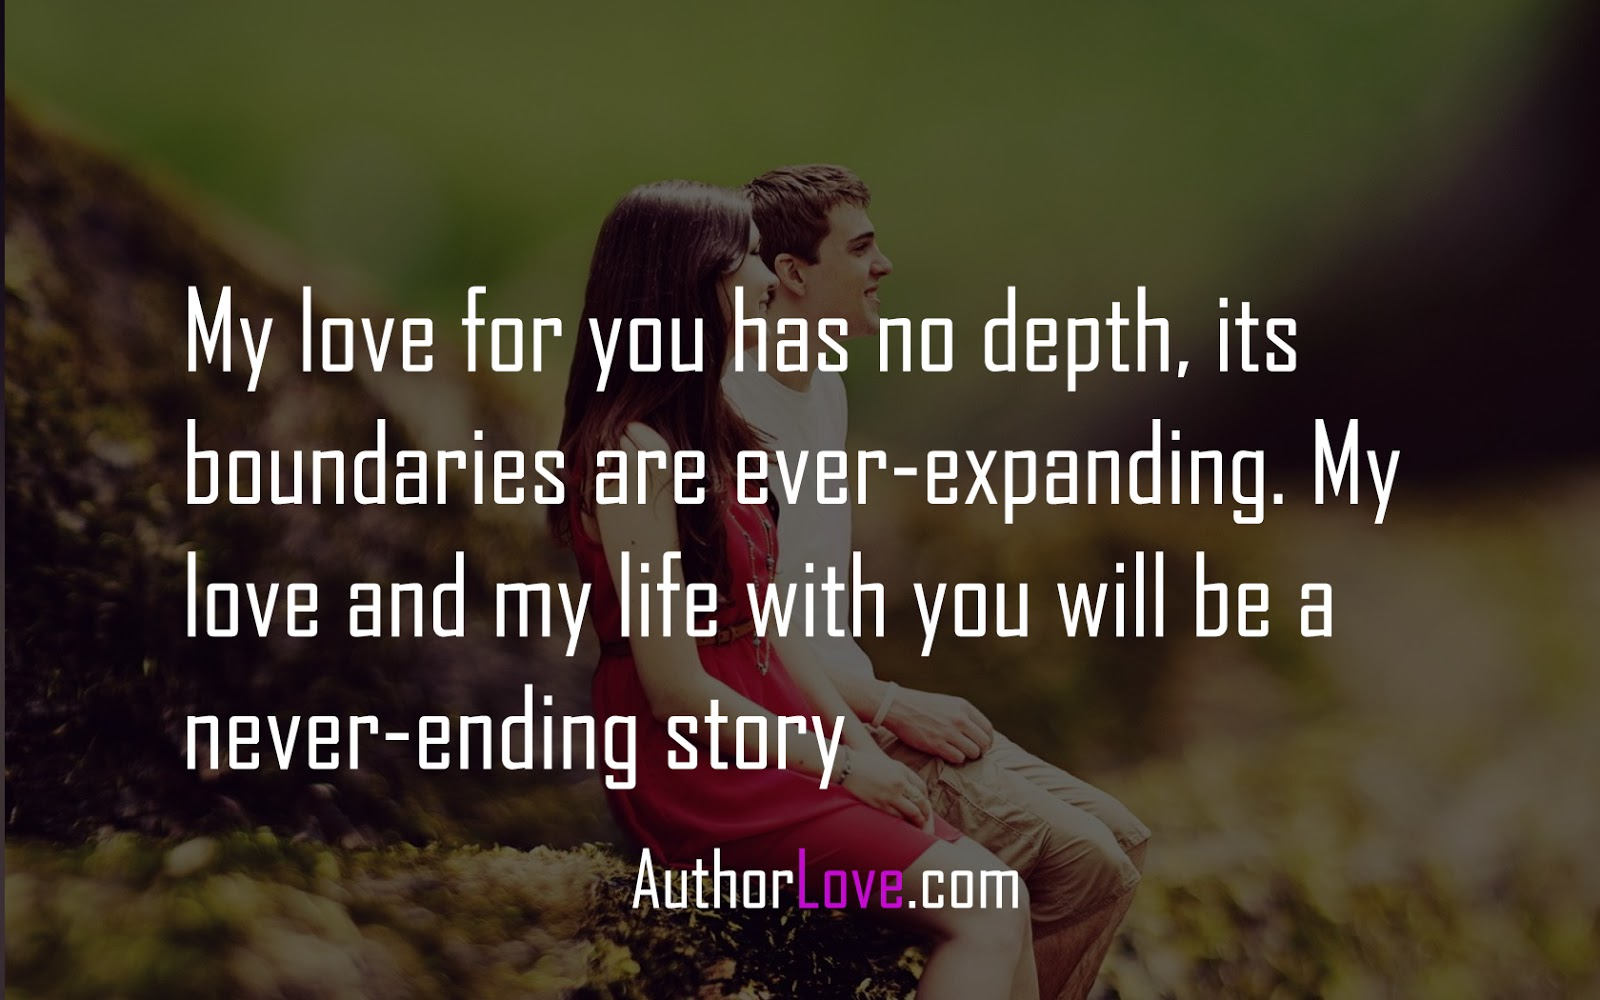 Love Of My Life Quotes For Her Unique My Love For You Has No Depth Its Boundaries Are Everexpanding